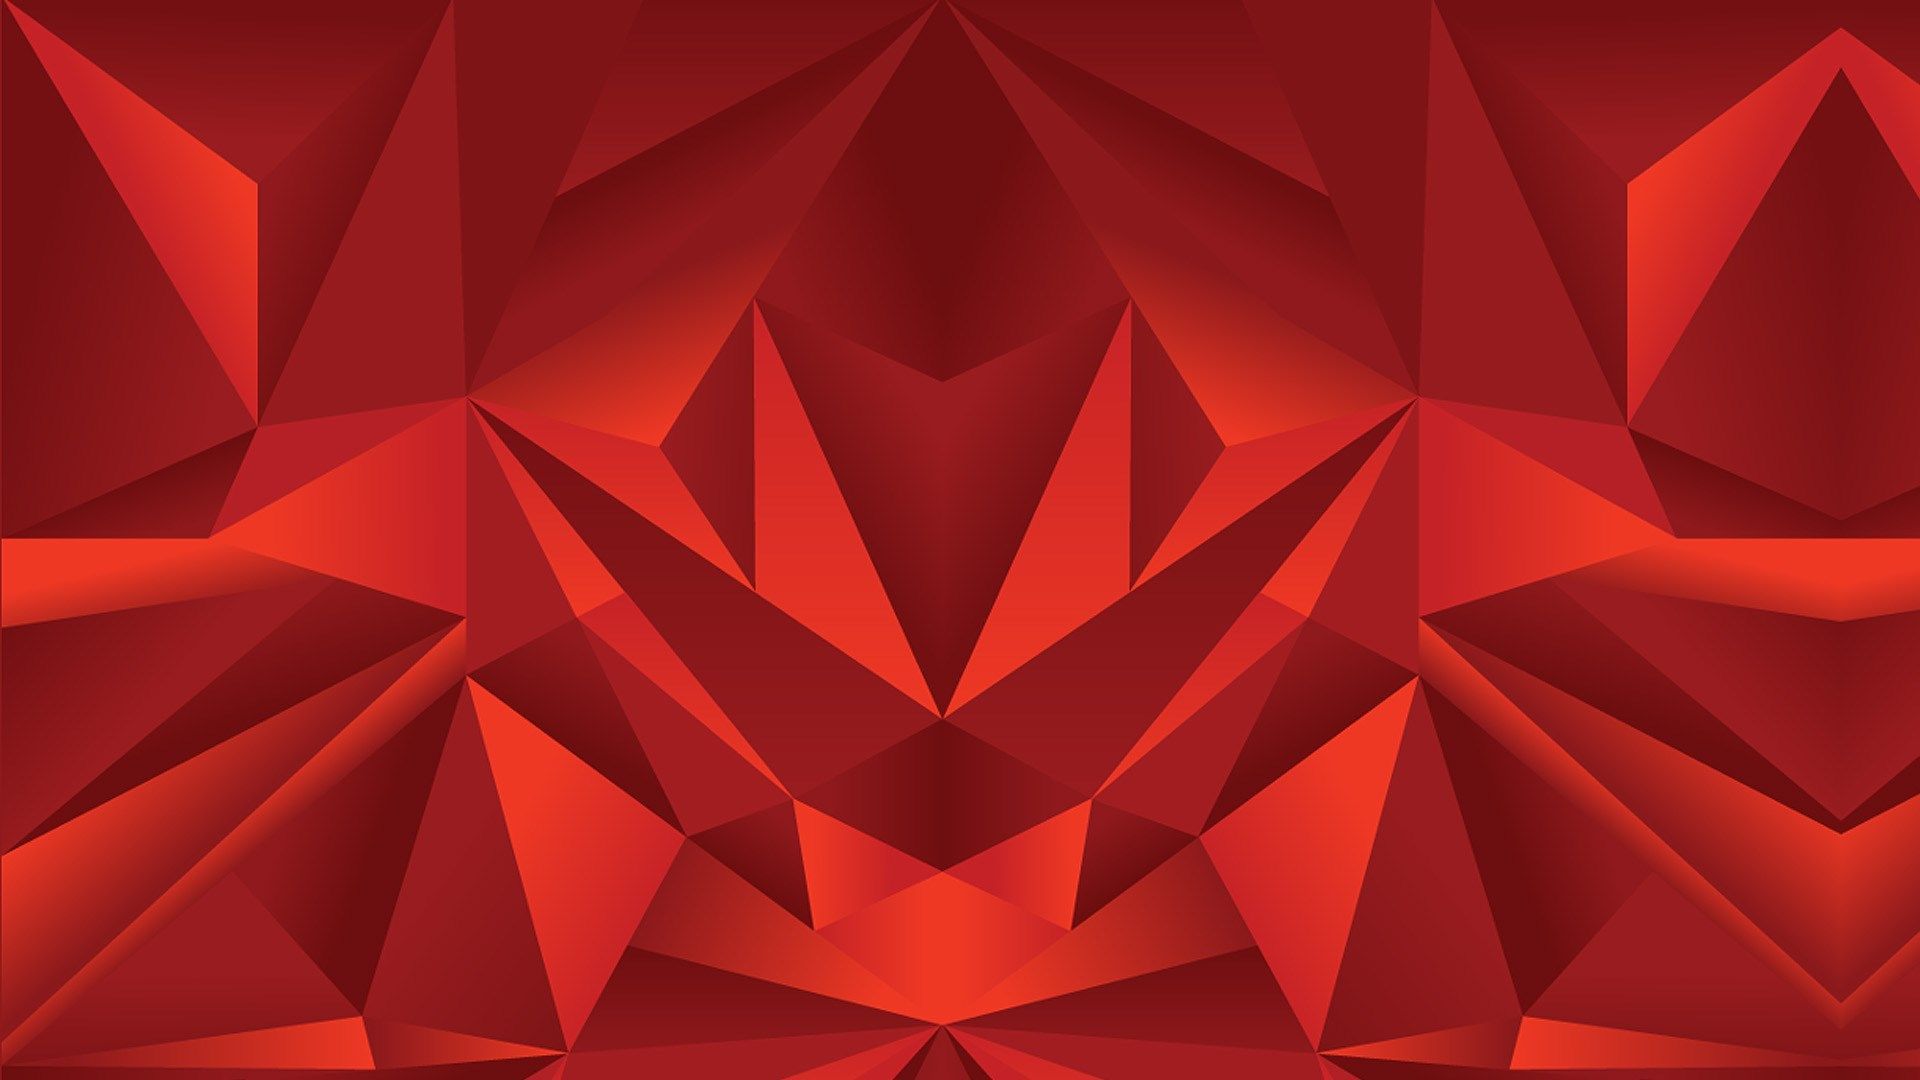 red backgrounds for desktop hd backgrounds, 1920x1080 (131 kb